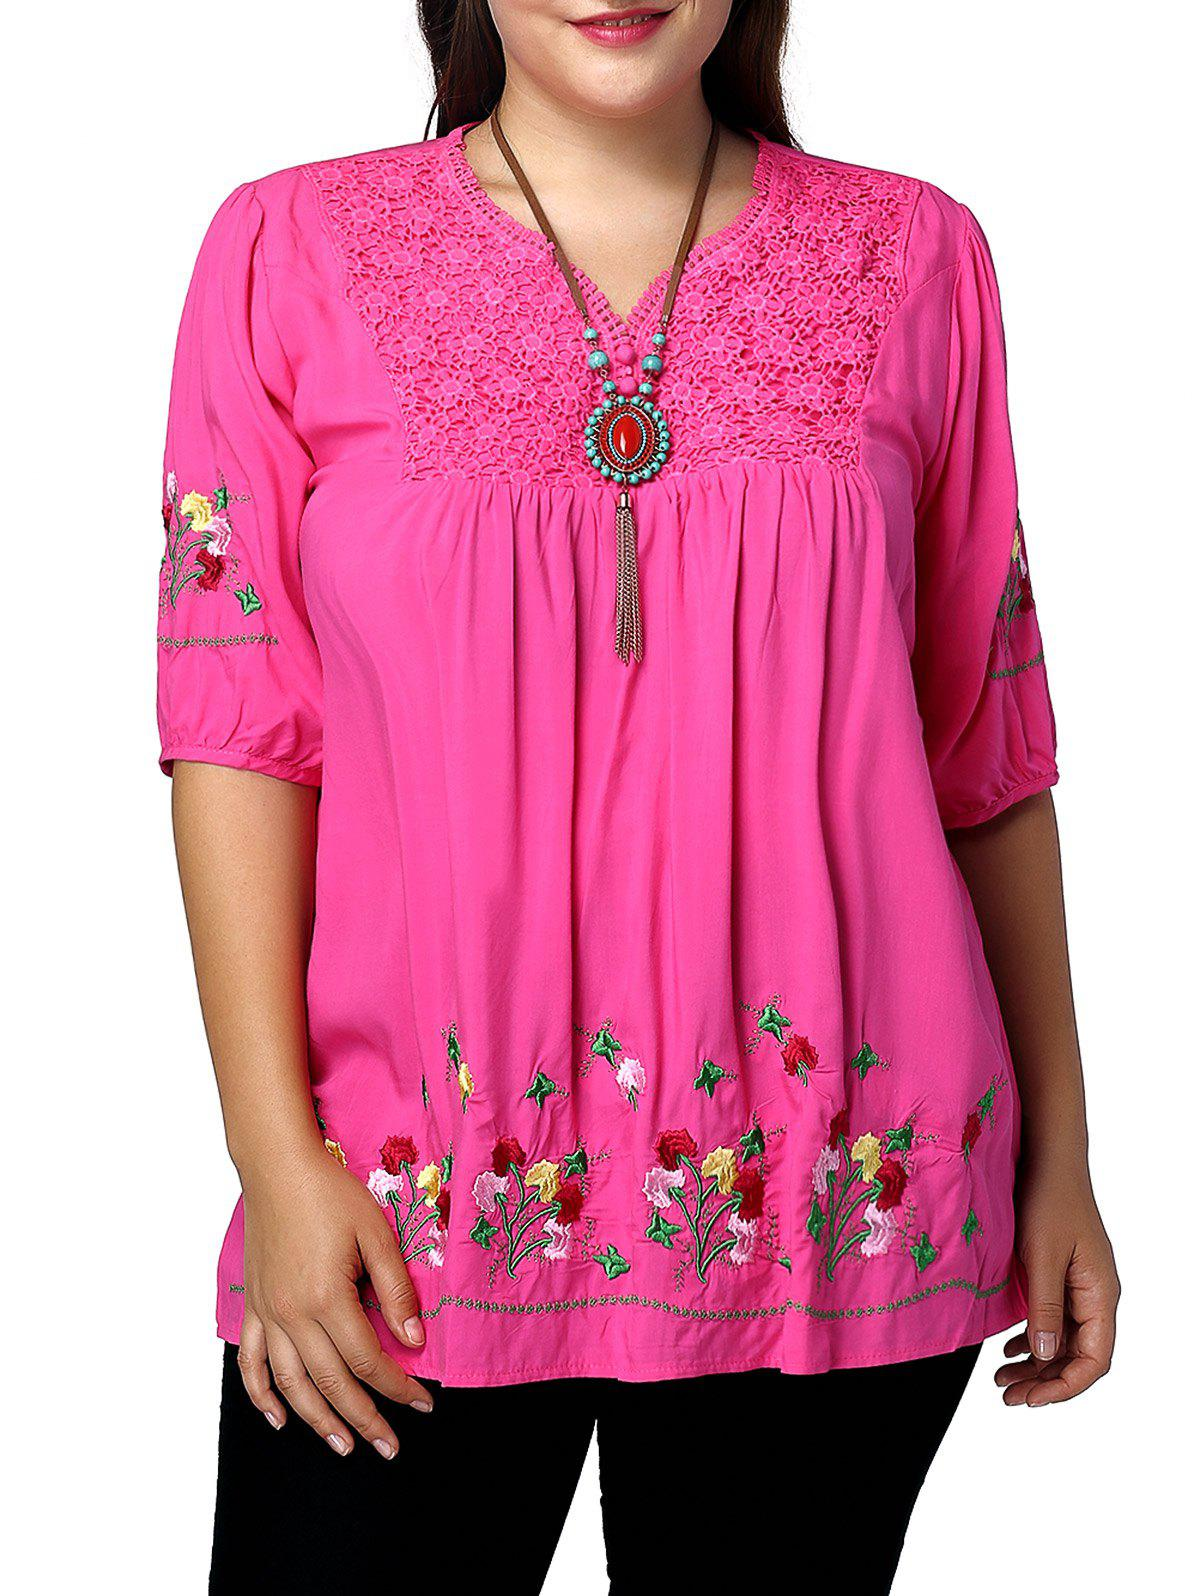 Plus Size V Neck Flroal Embroidery Blouse - ROSE MADDER 3XL